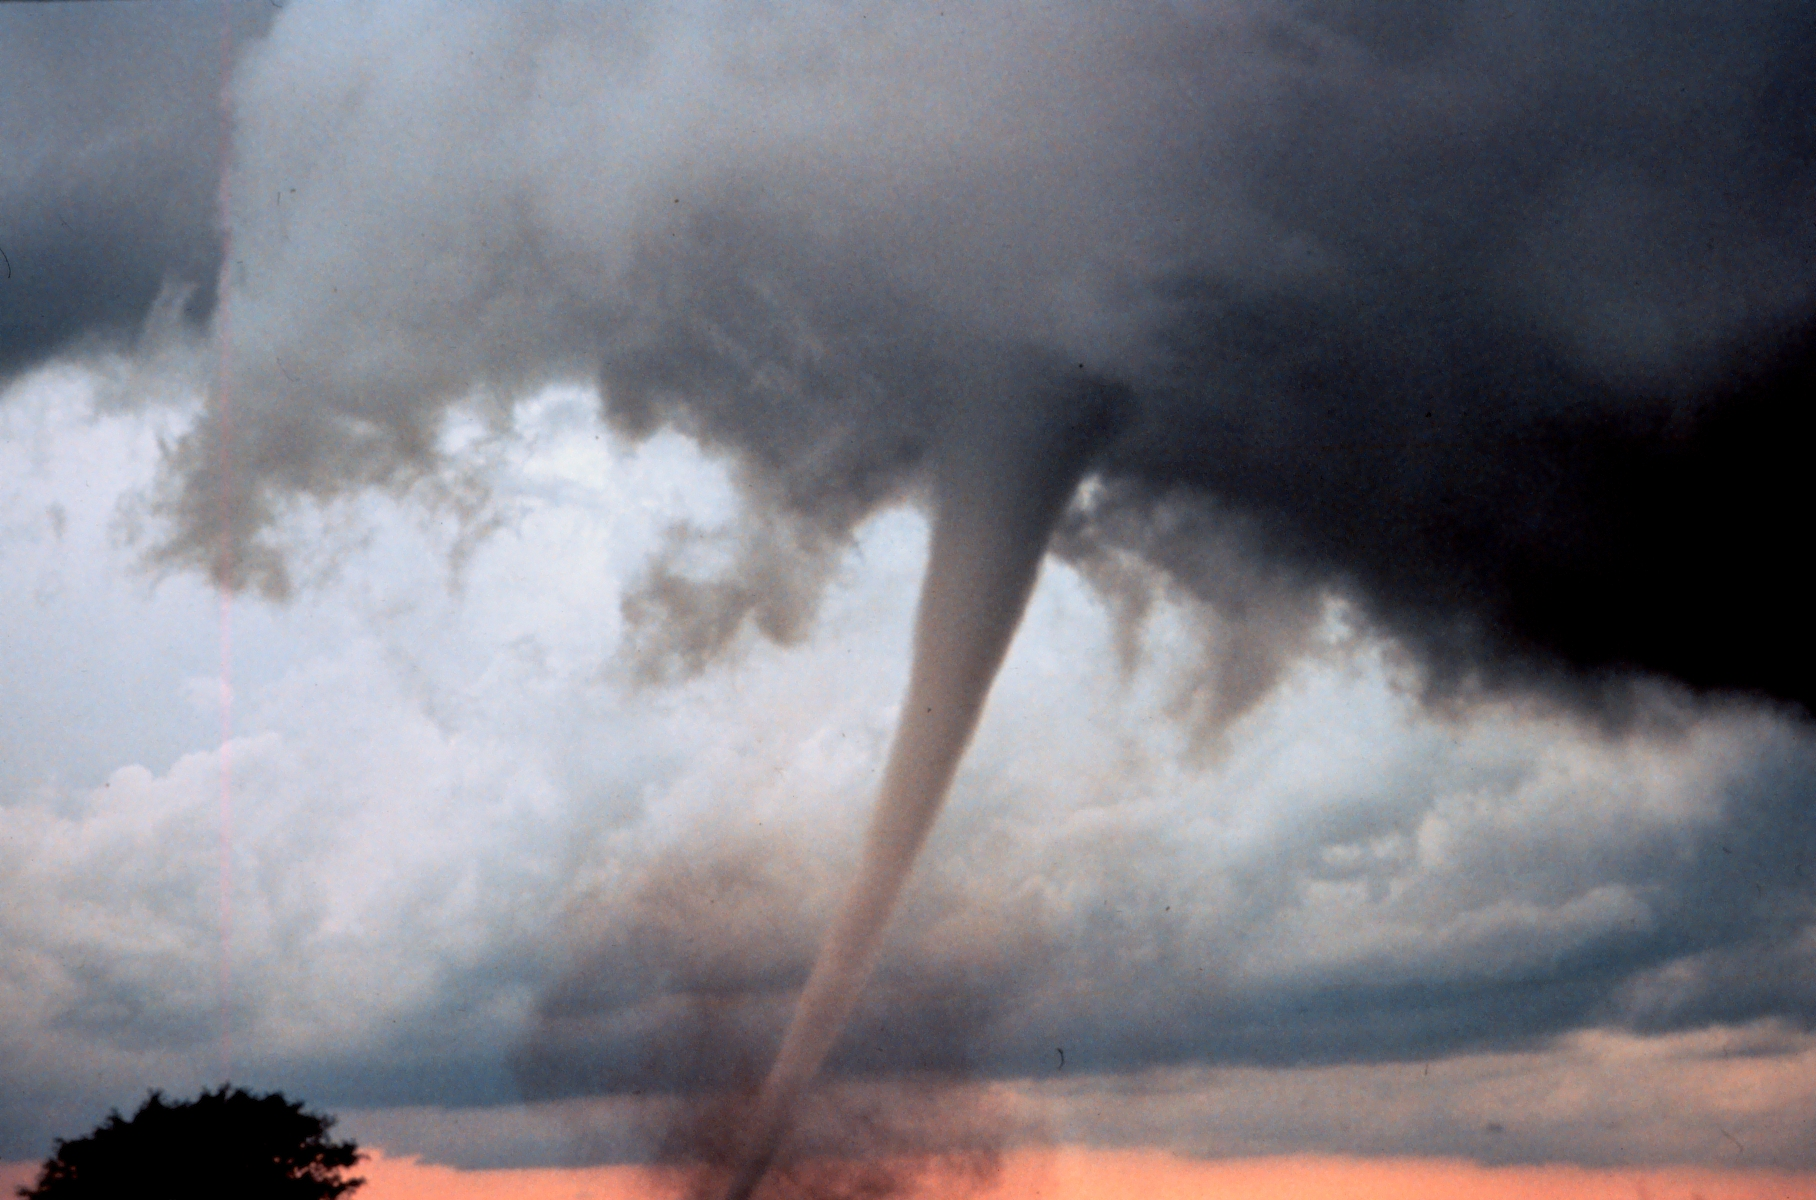 http://upload.wikimedia.org/wikipedia/commons/e/ef/Occluded_mesocyclone_tornado5_-_NOAA.jpg